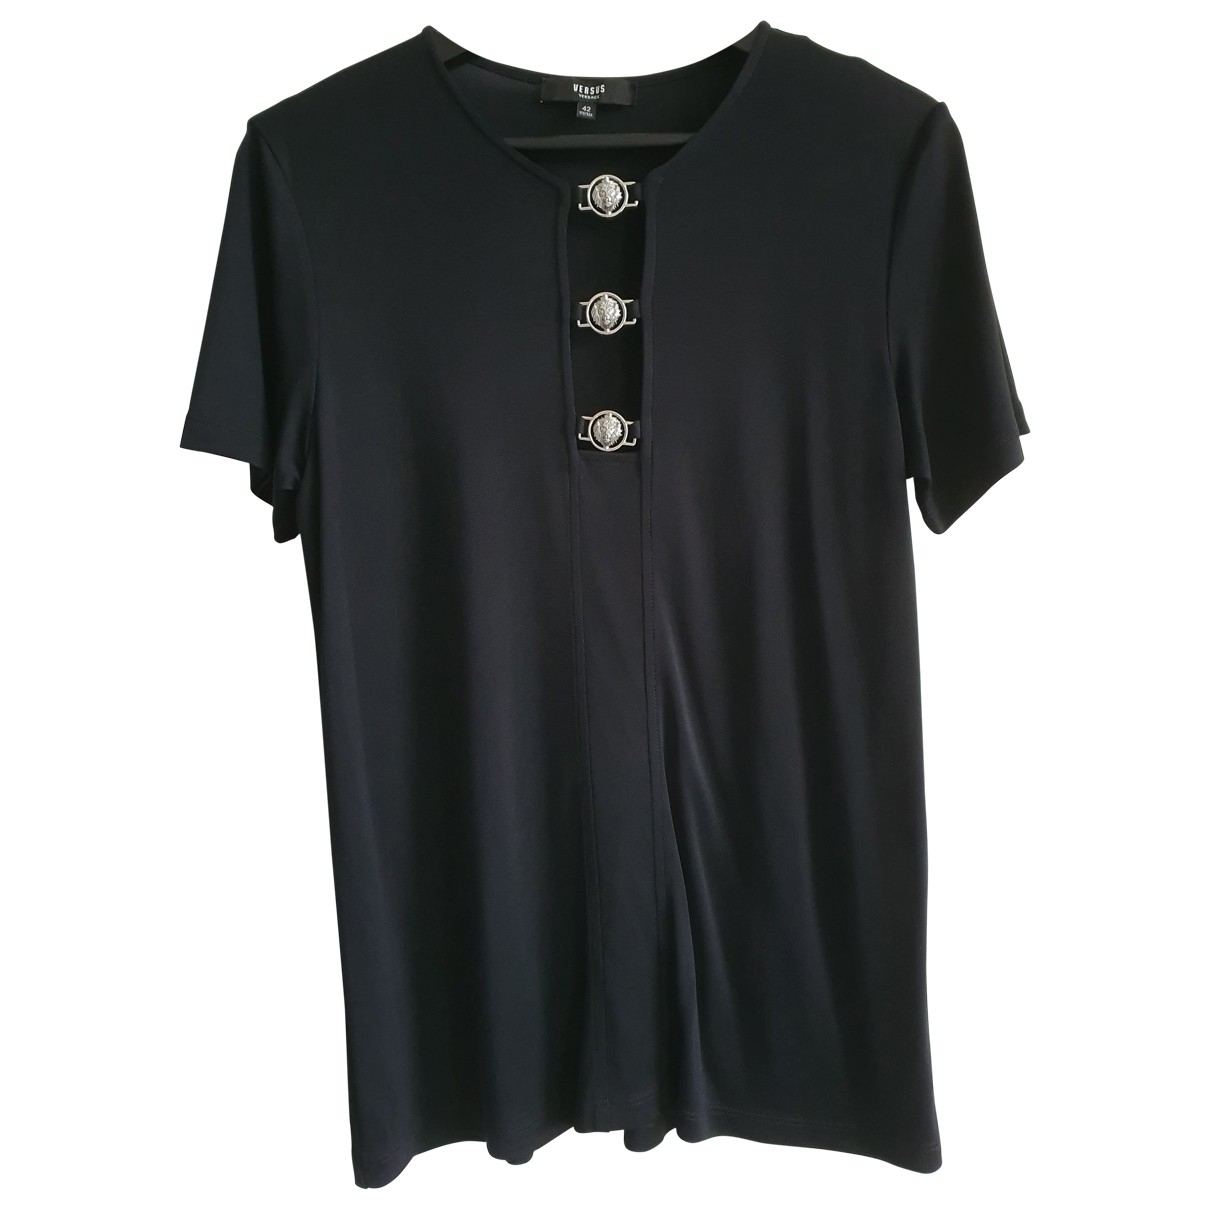 Versus \N Black  top for Women 42 IT